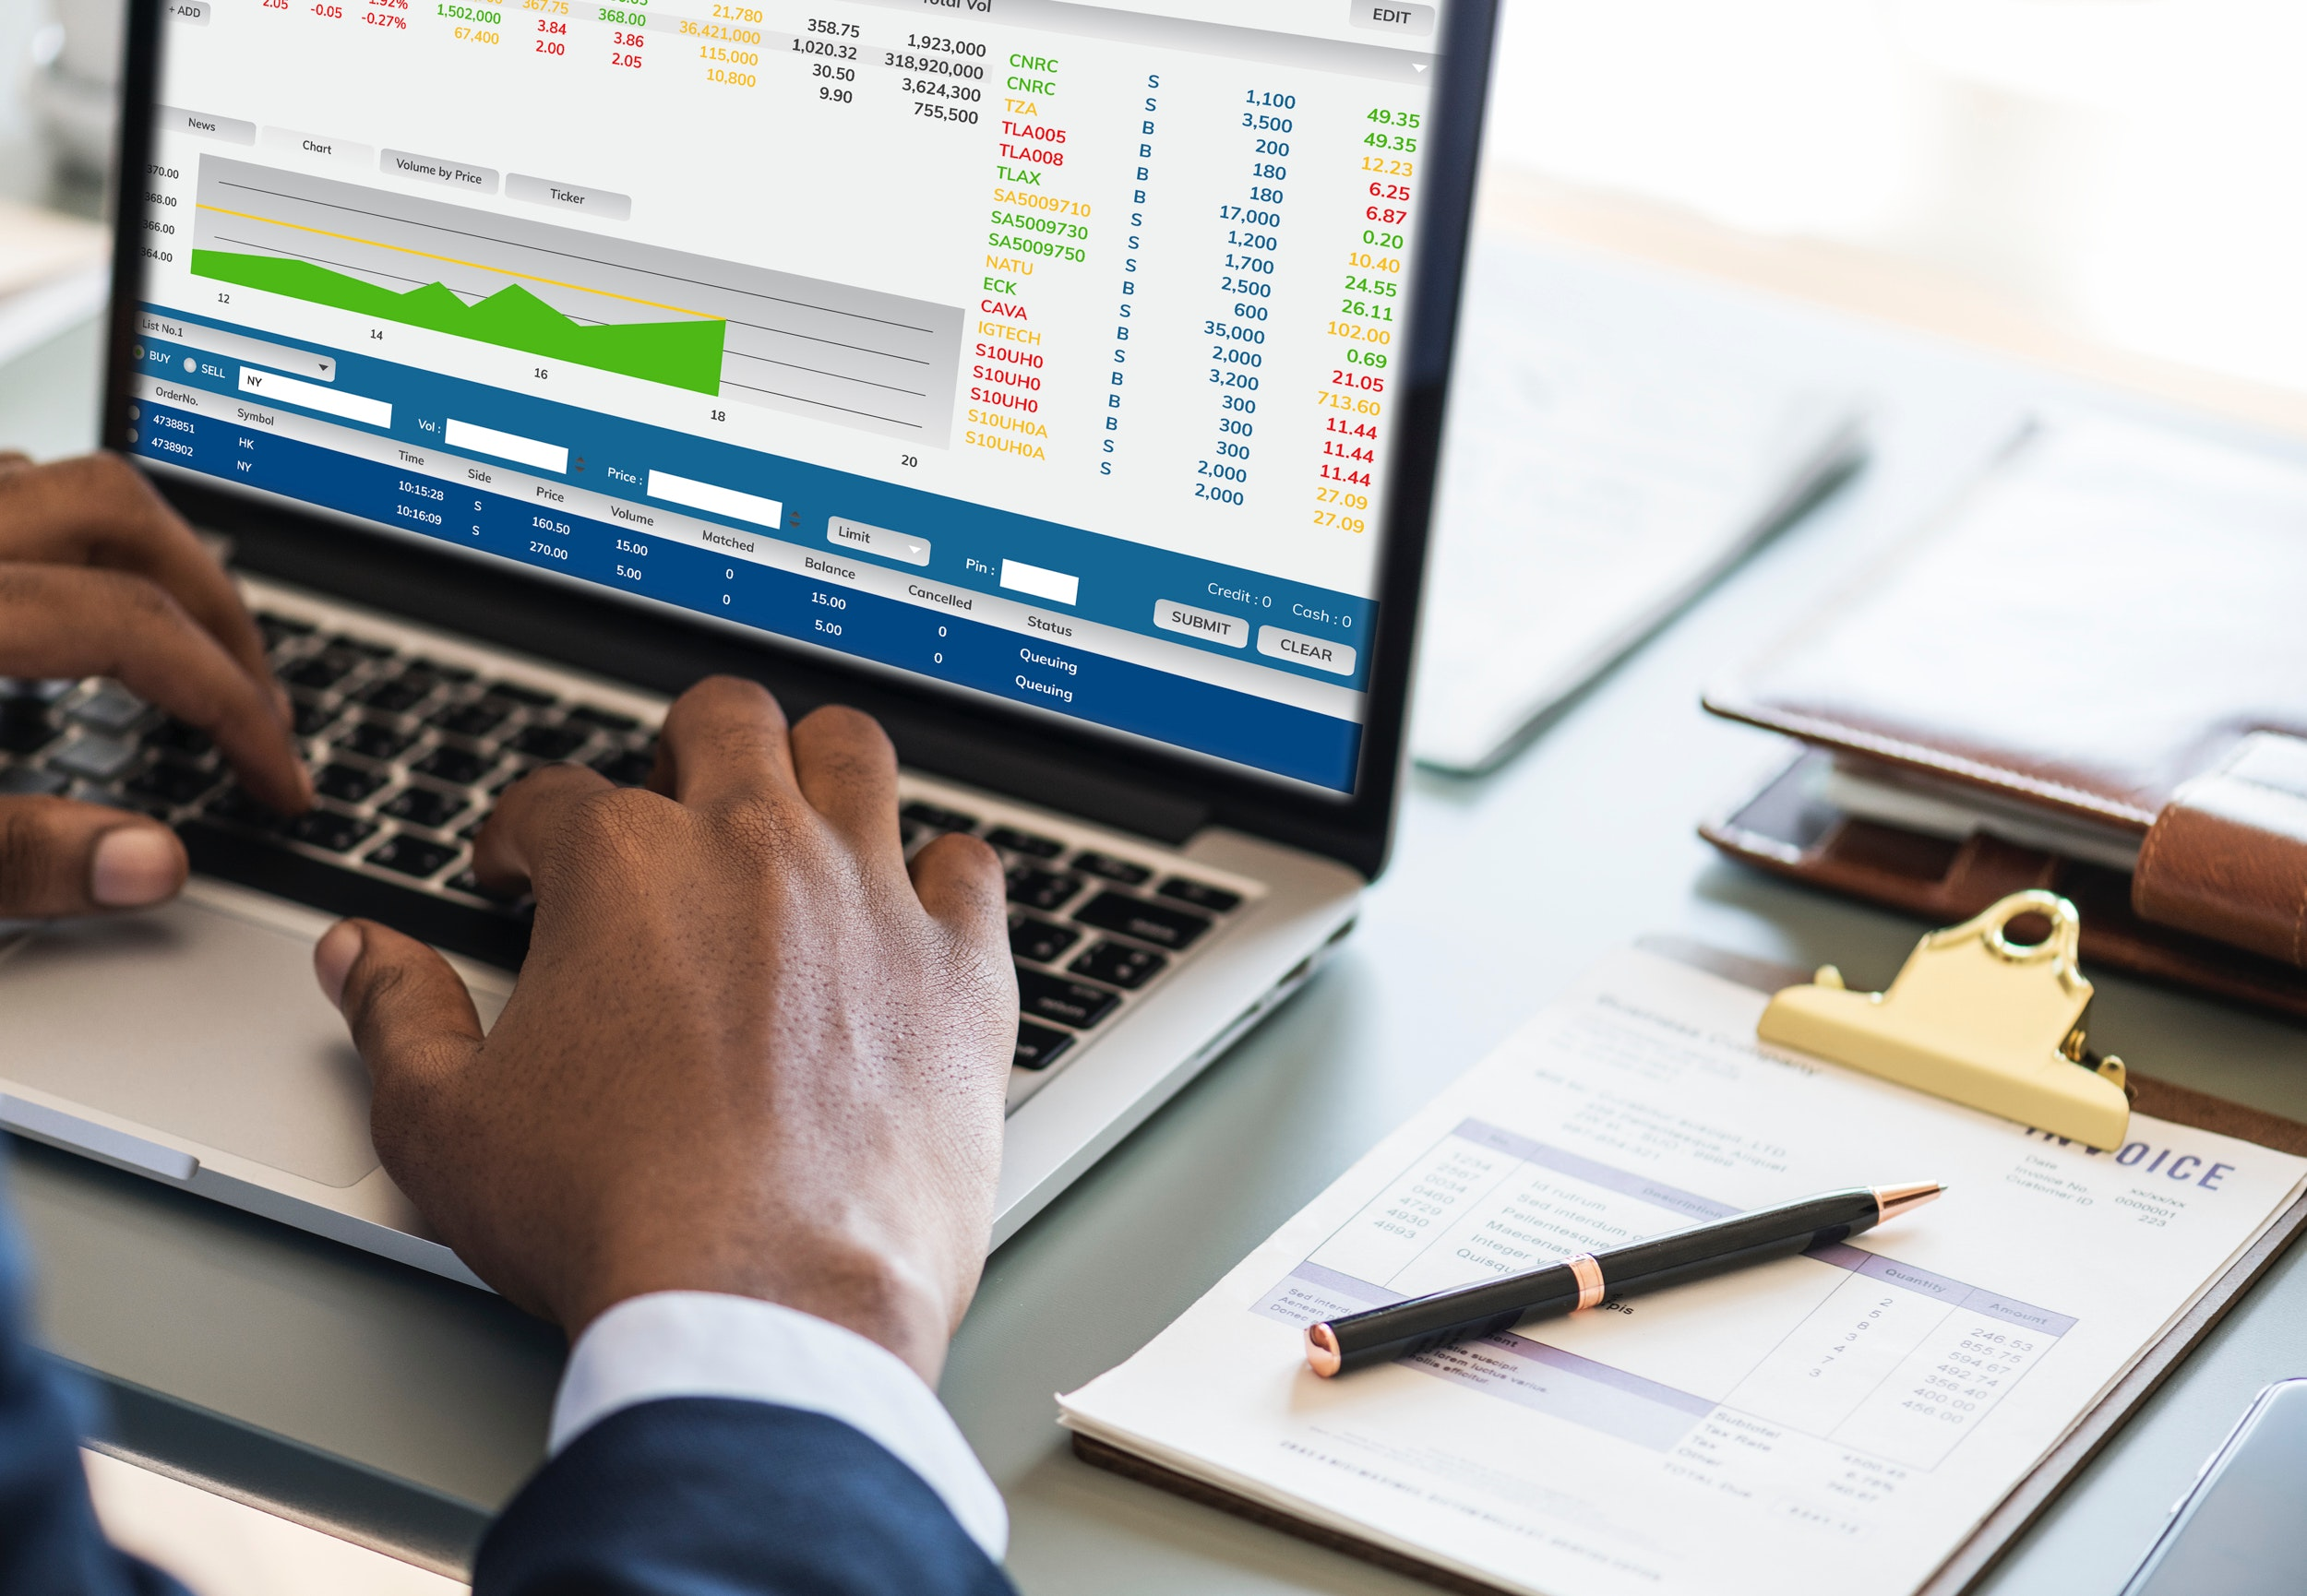 The importance of Business Analytics in decision making